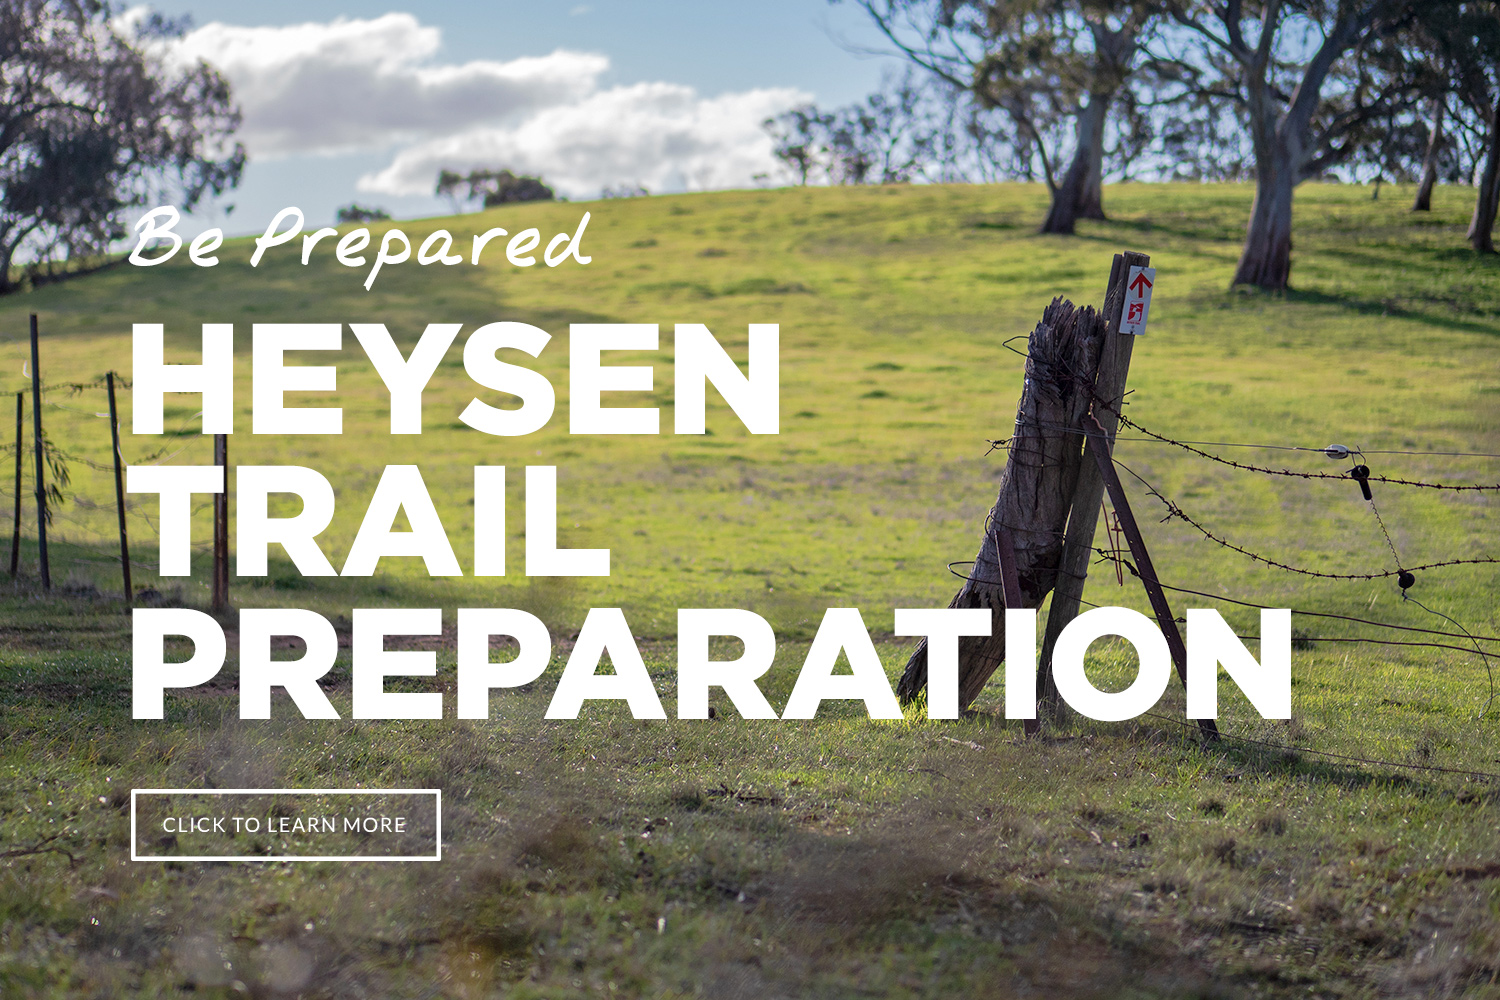 Heysen Trail Preparation Guide